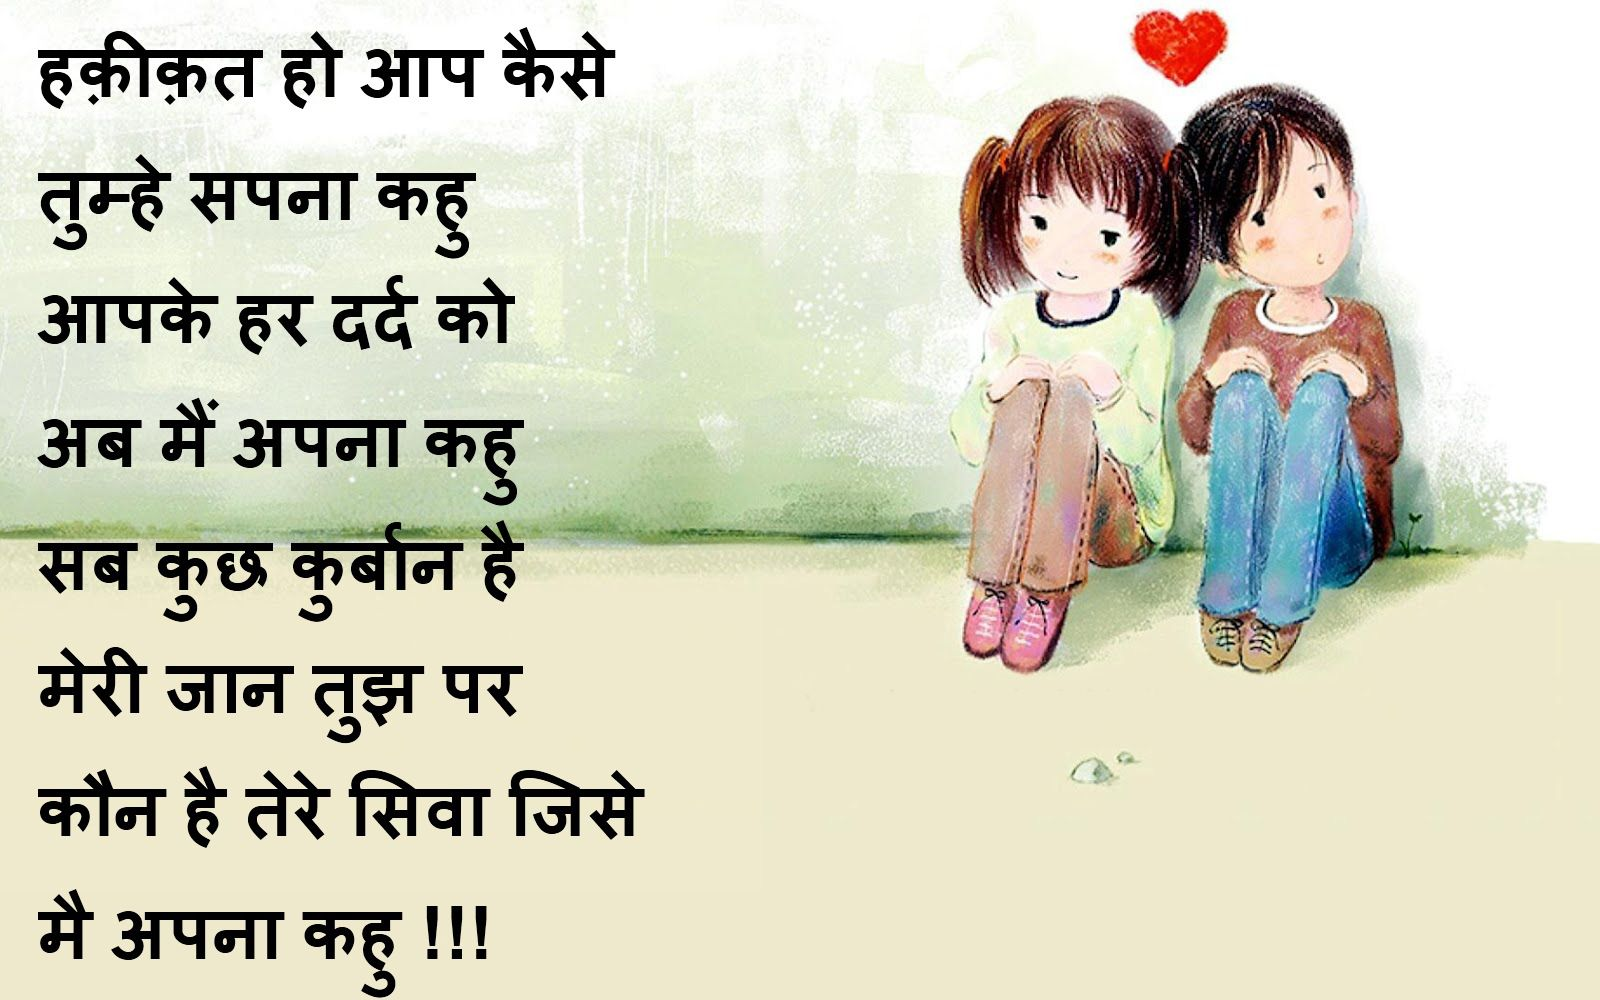 Hindi Shayari Hd Wallpapers Best Games Wallpapers Love Quotes